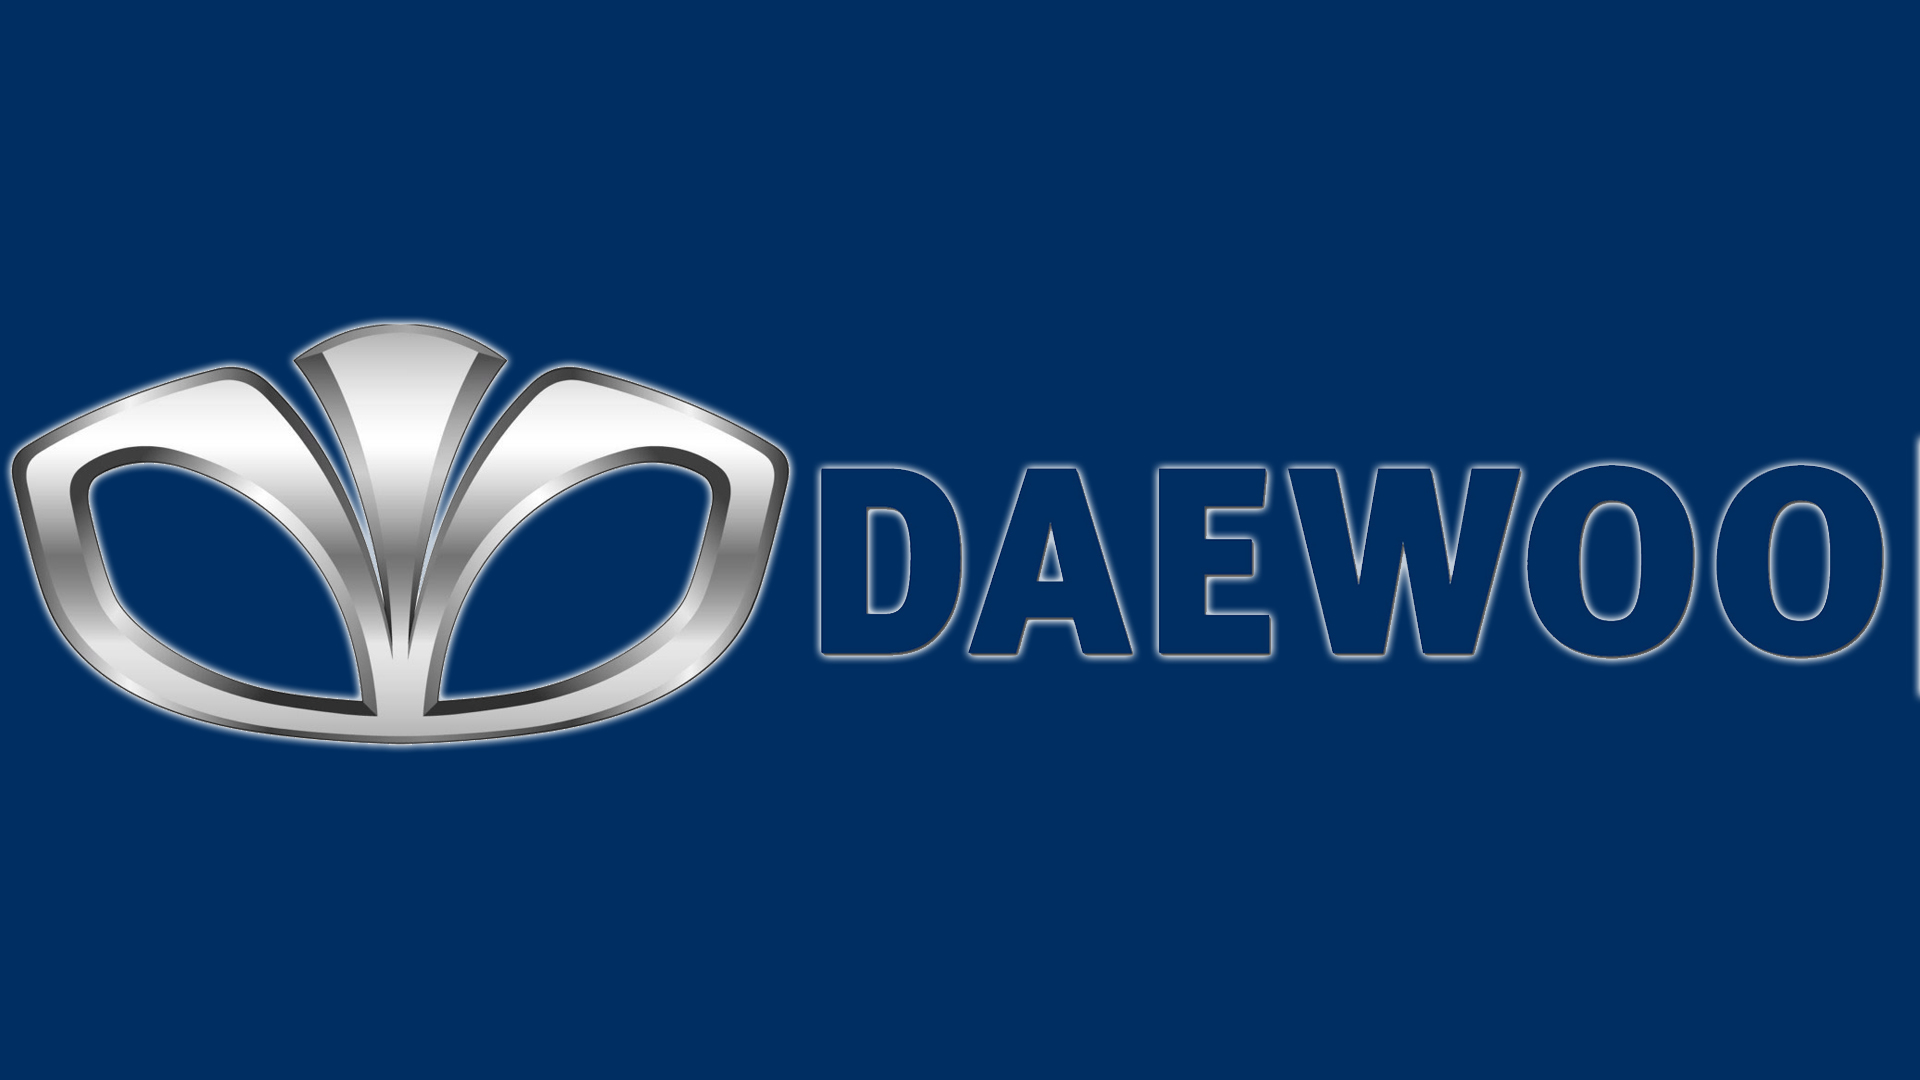 daewoo logo meaning and history latest models world